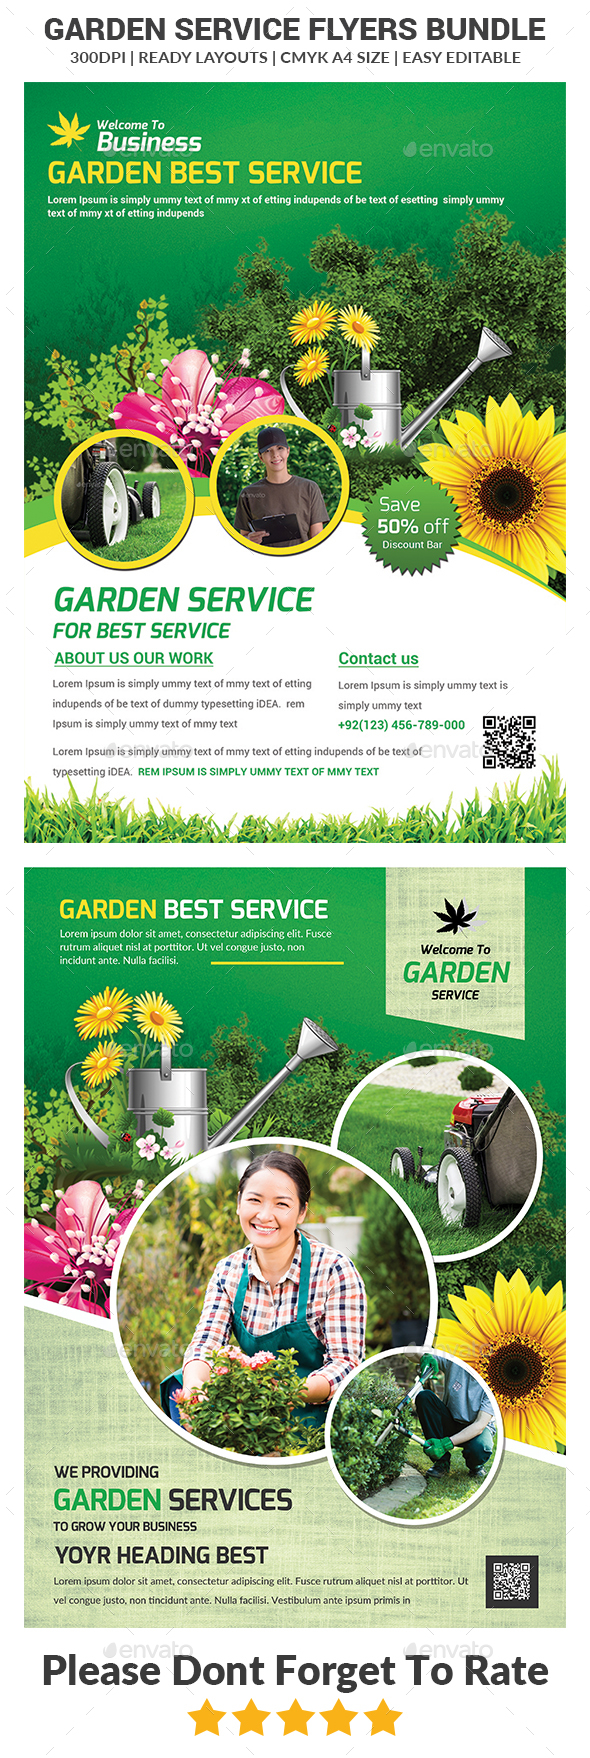 Garden Services Flyers Bundle - Corporate Flyers